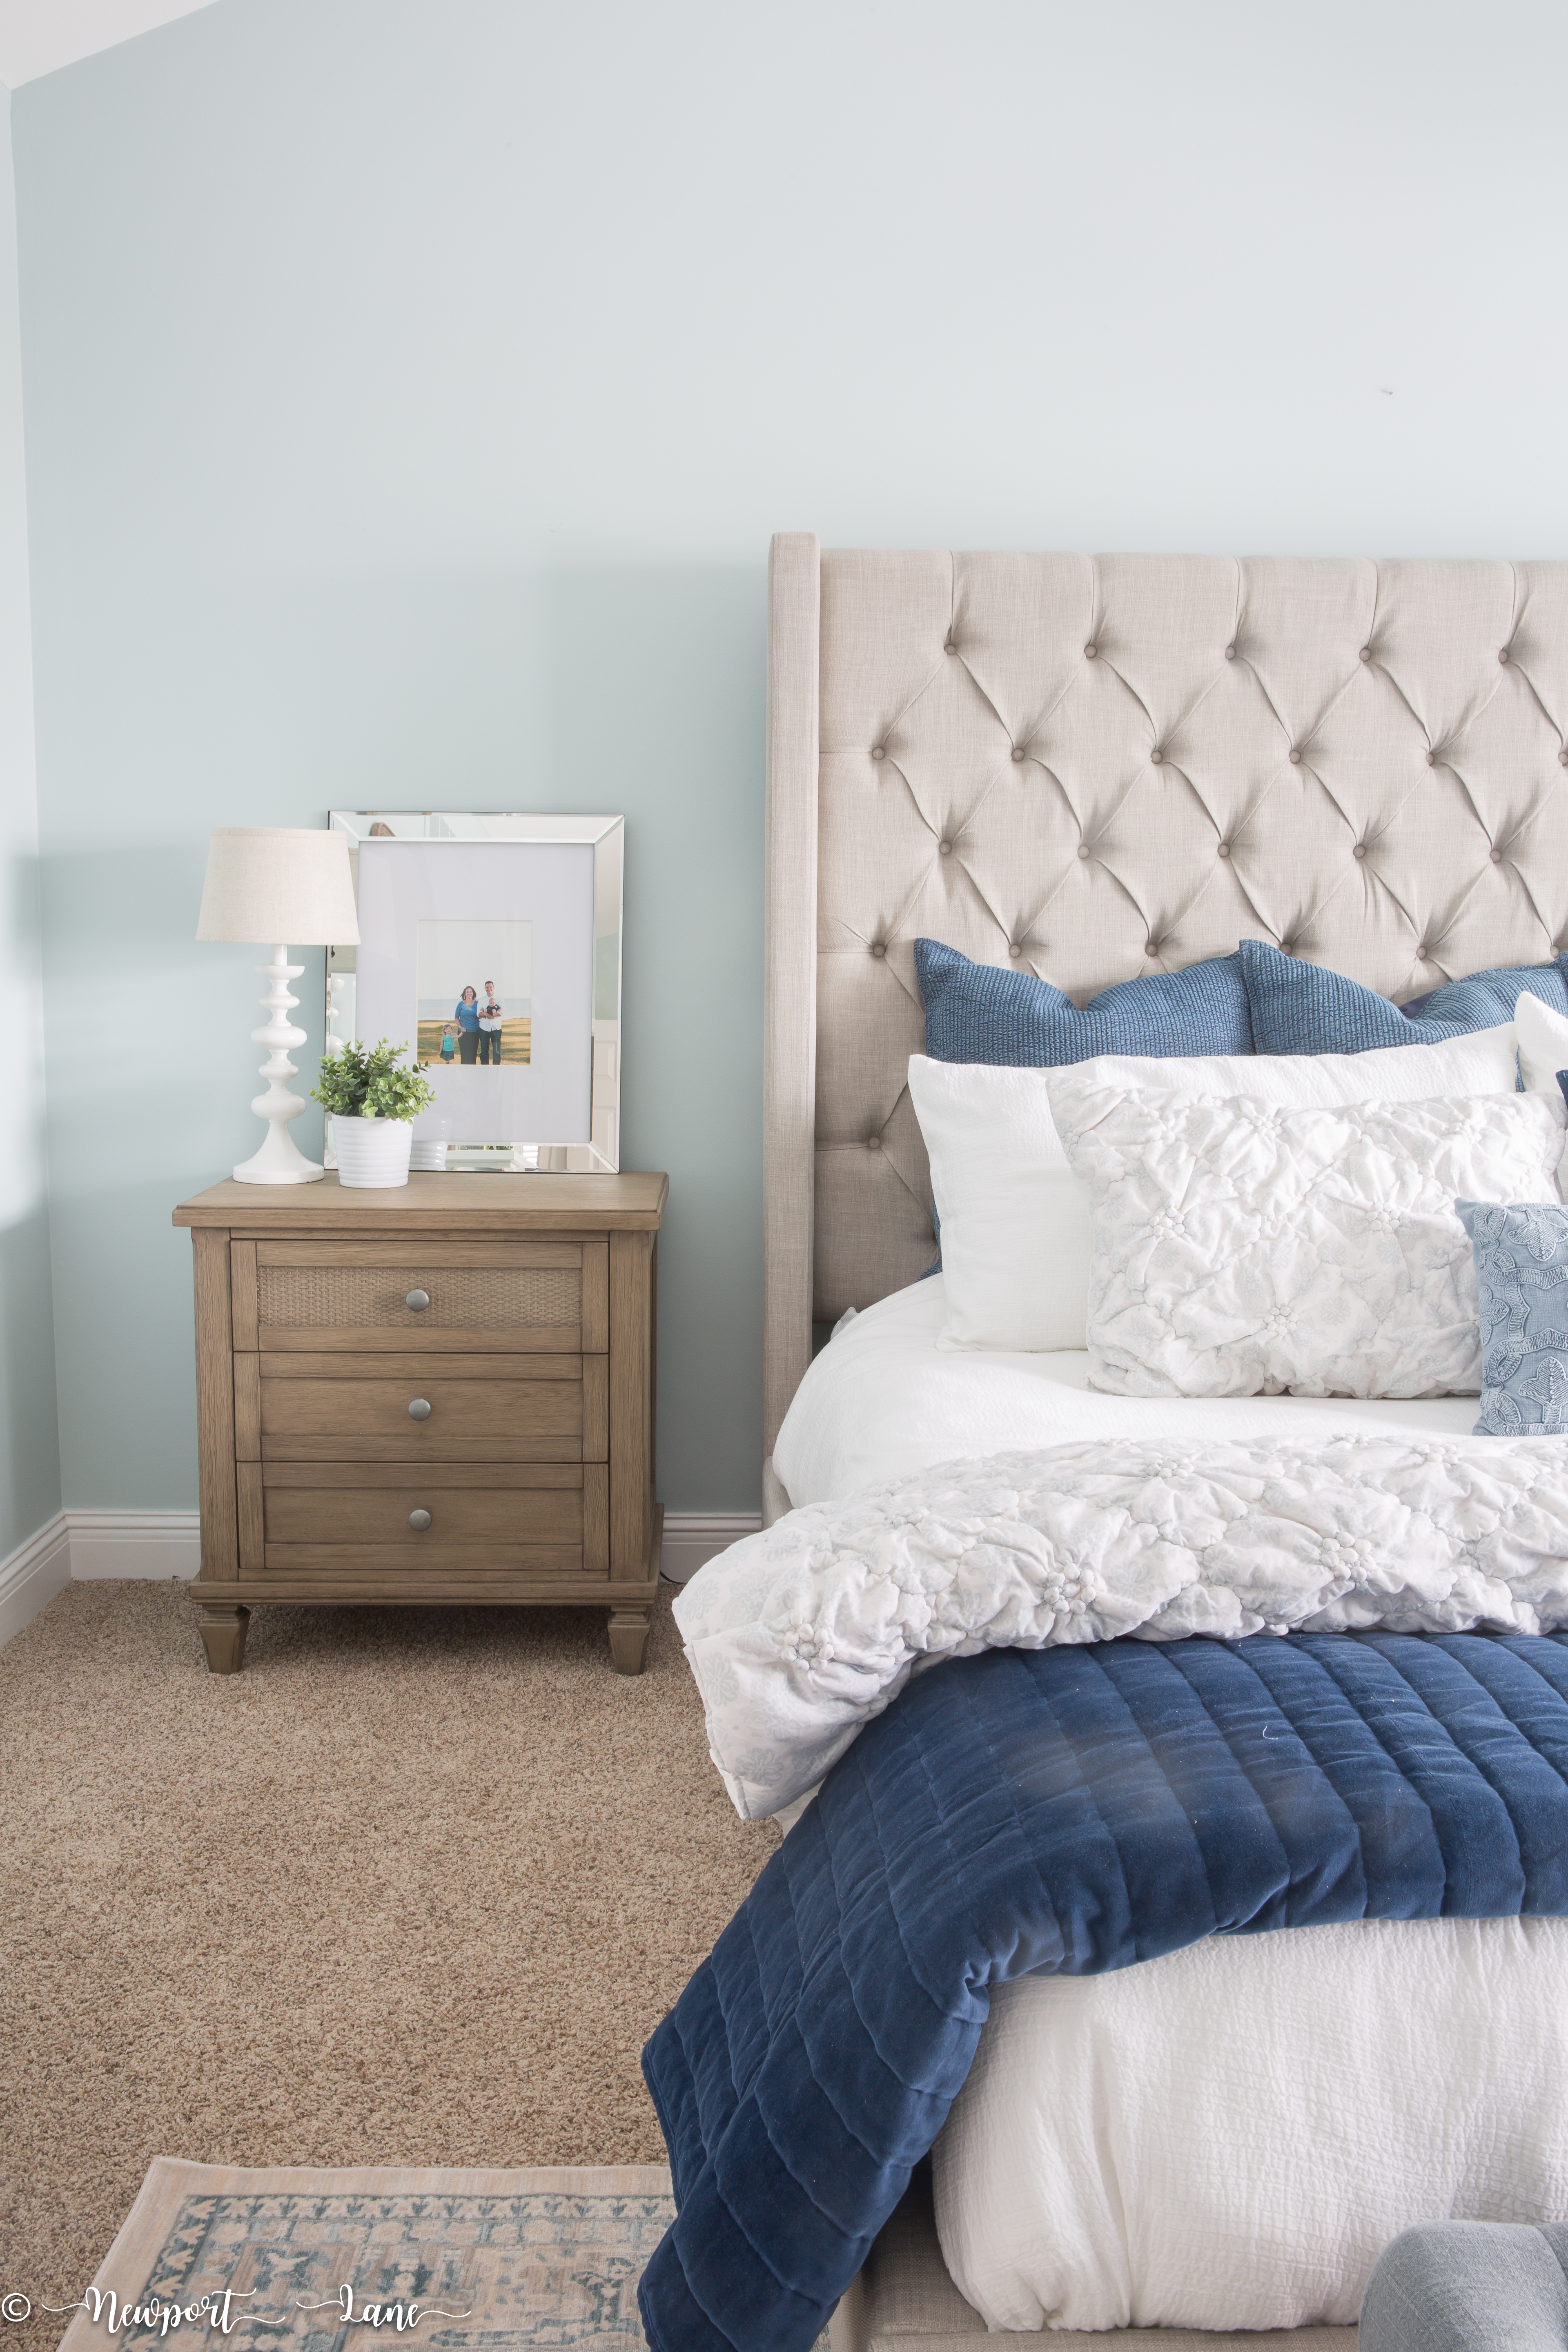 Our California Coastal Bedroom Makeover is full of soothing blue and whites and coastal touches